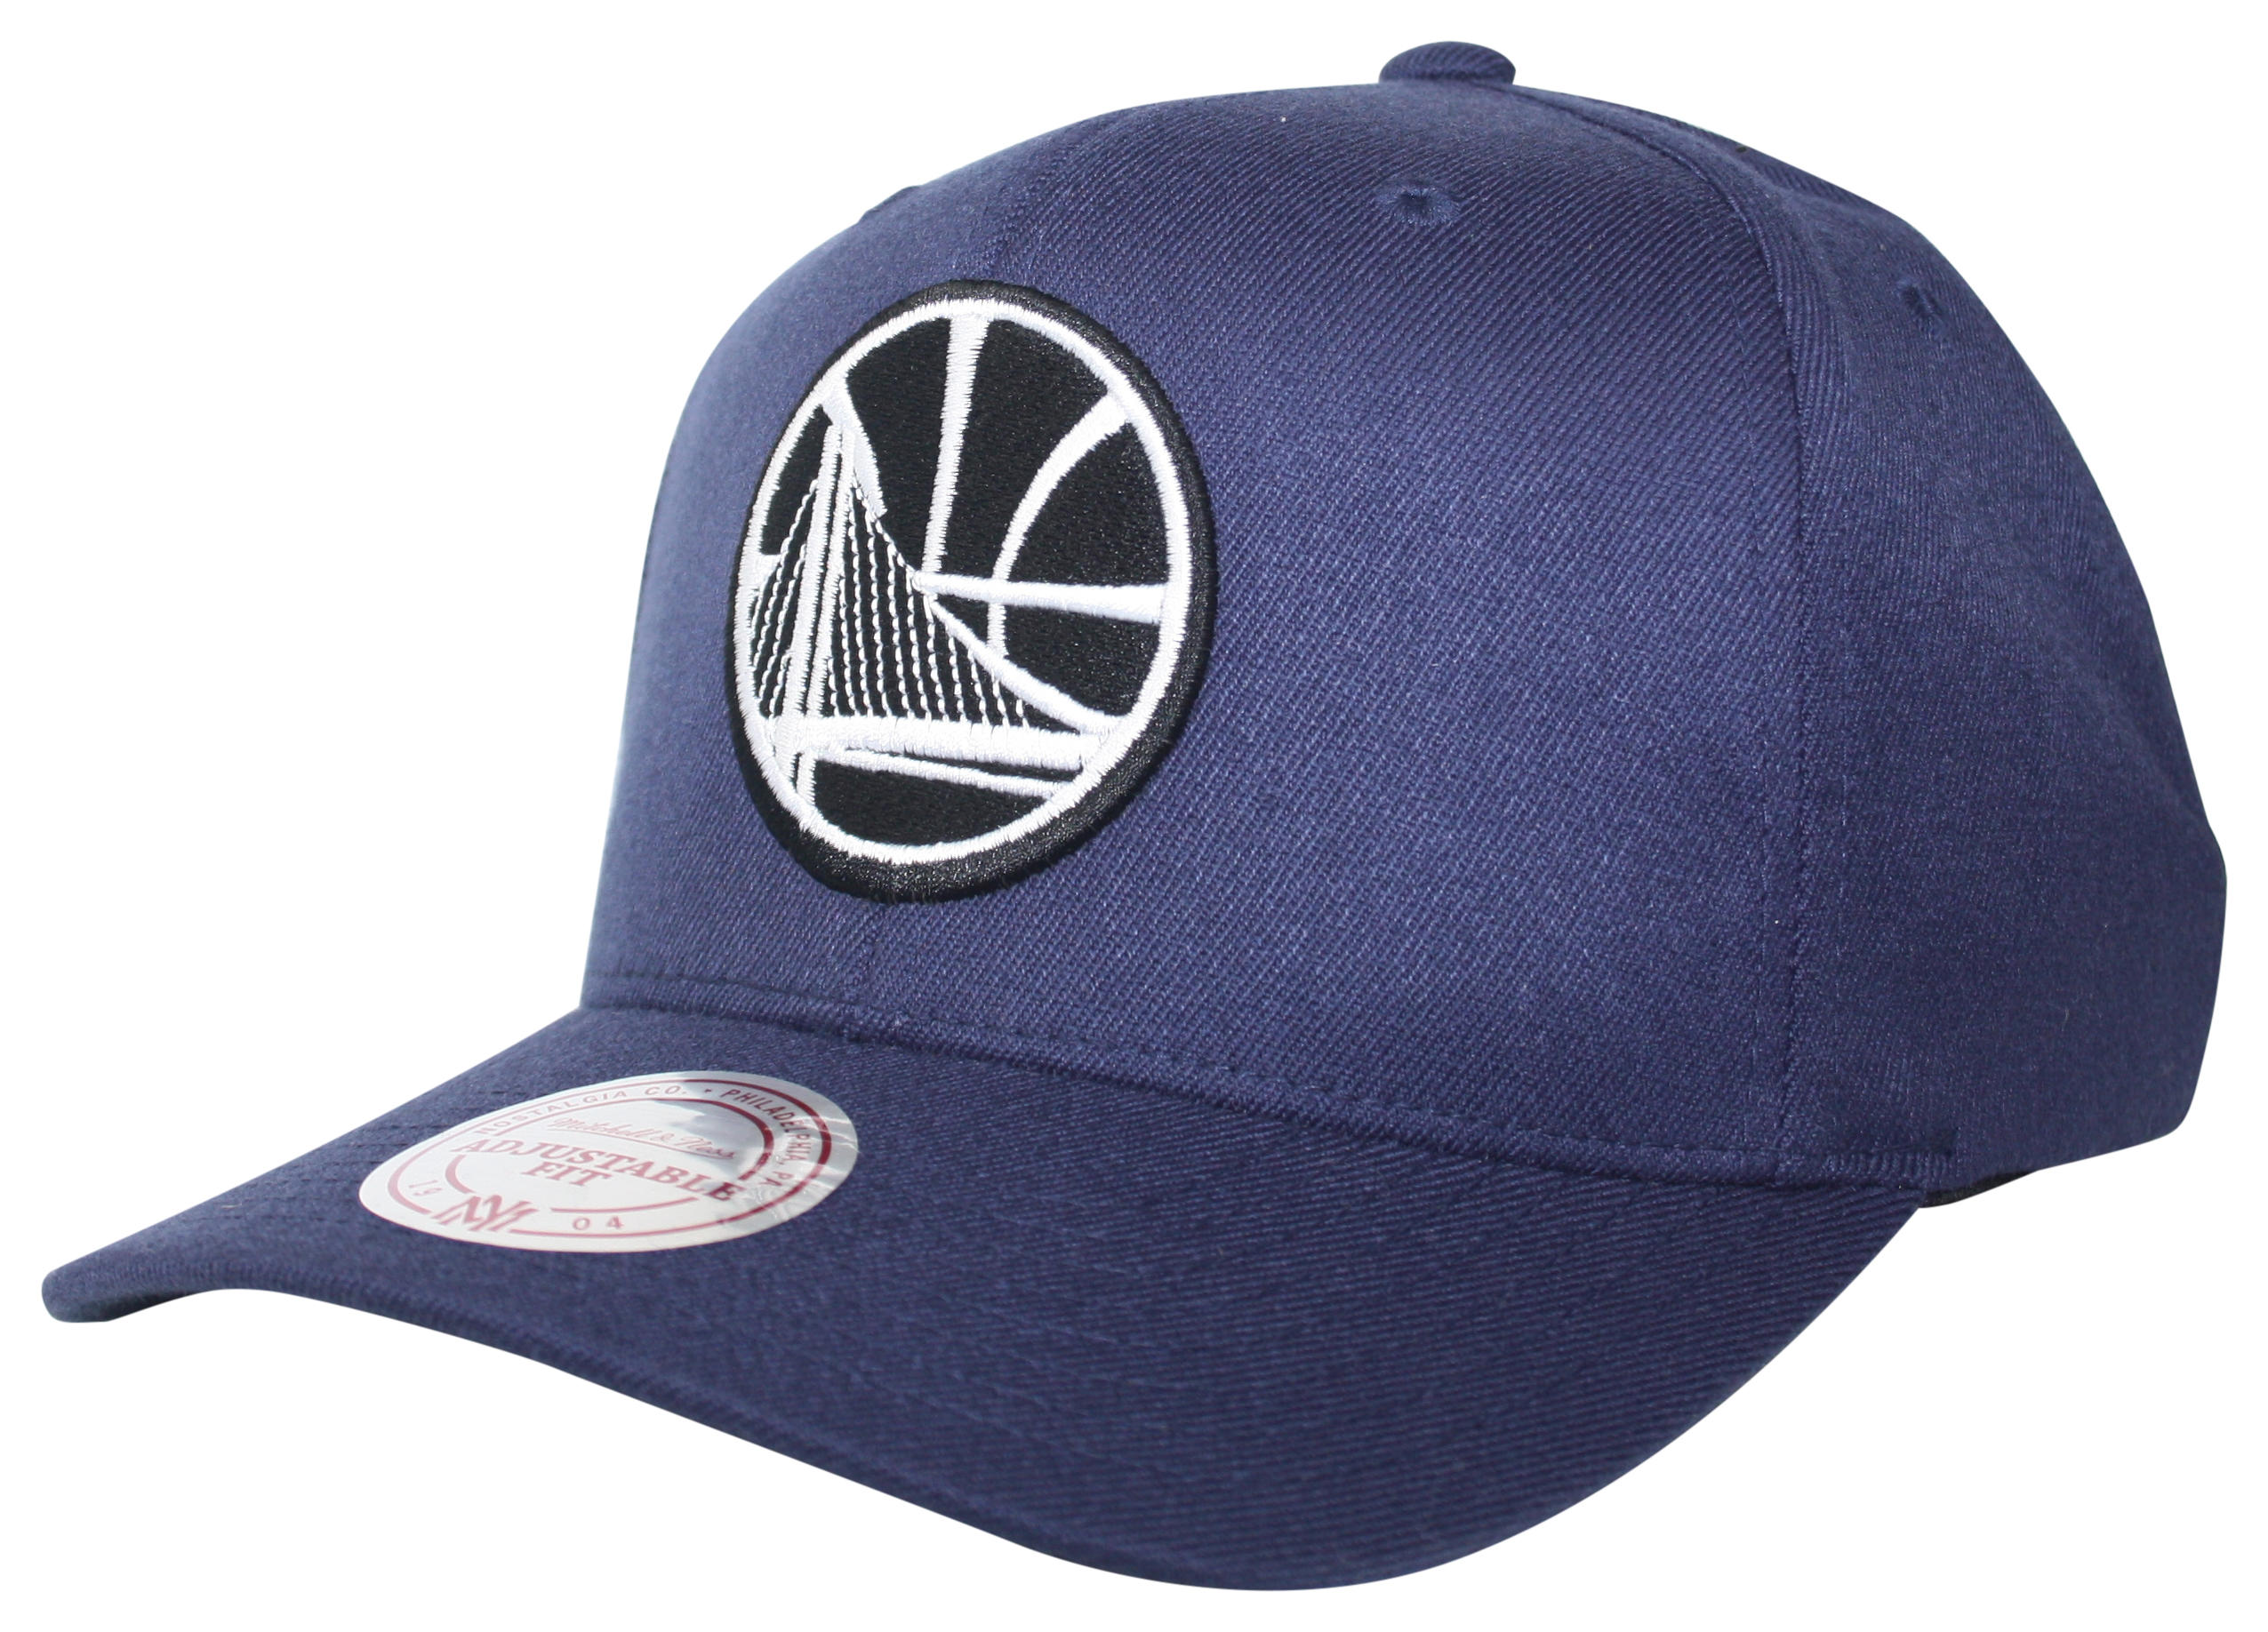 d2b8bb3e Mitchell & Ness | Golden State Warriors Blue Black & White Logo 110 ...